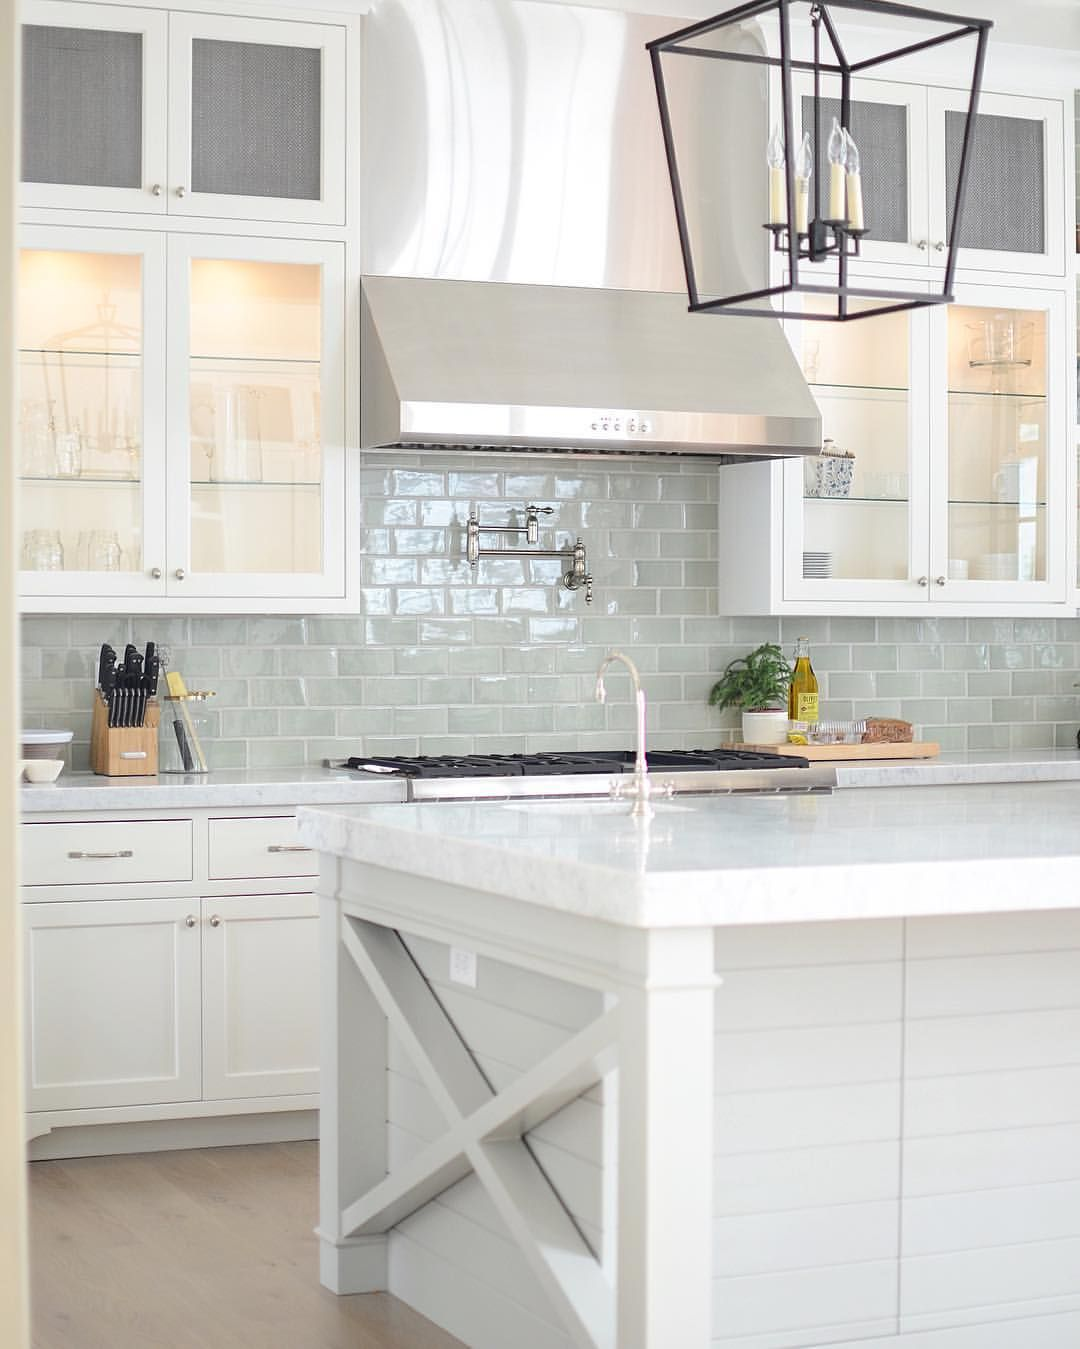 Bright white kitchen with pale blue subway tile backsplash Home